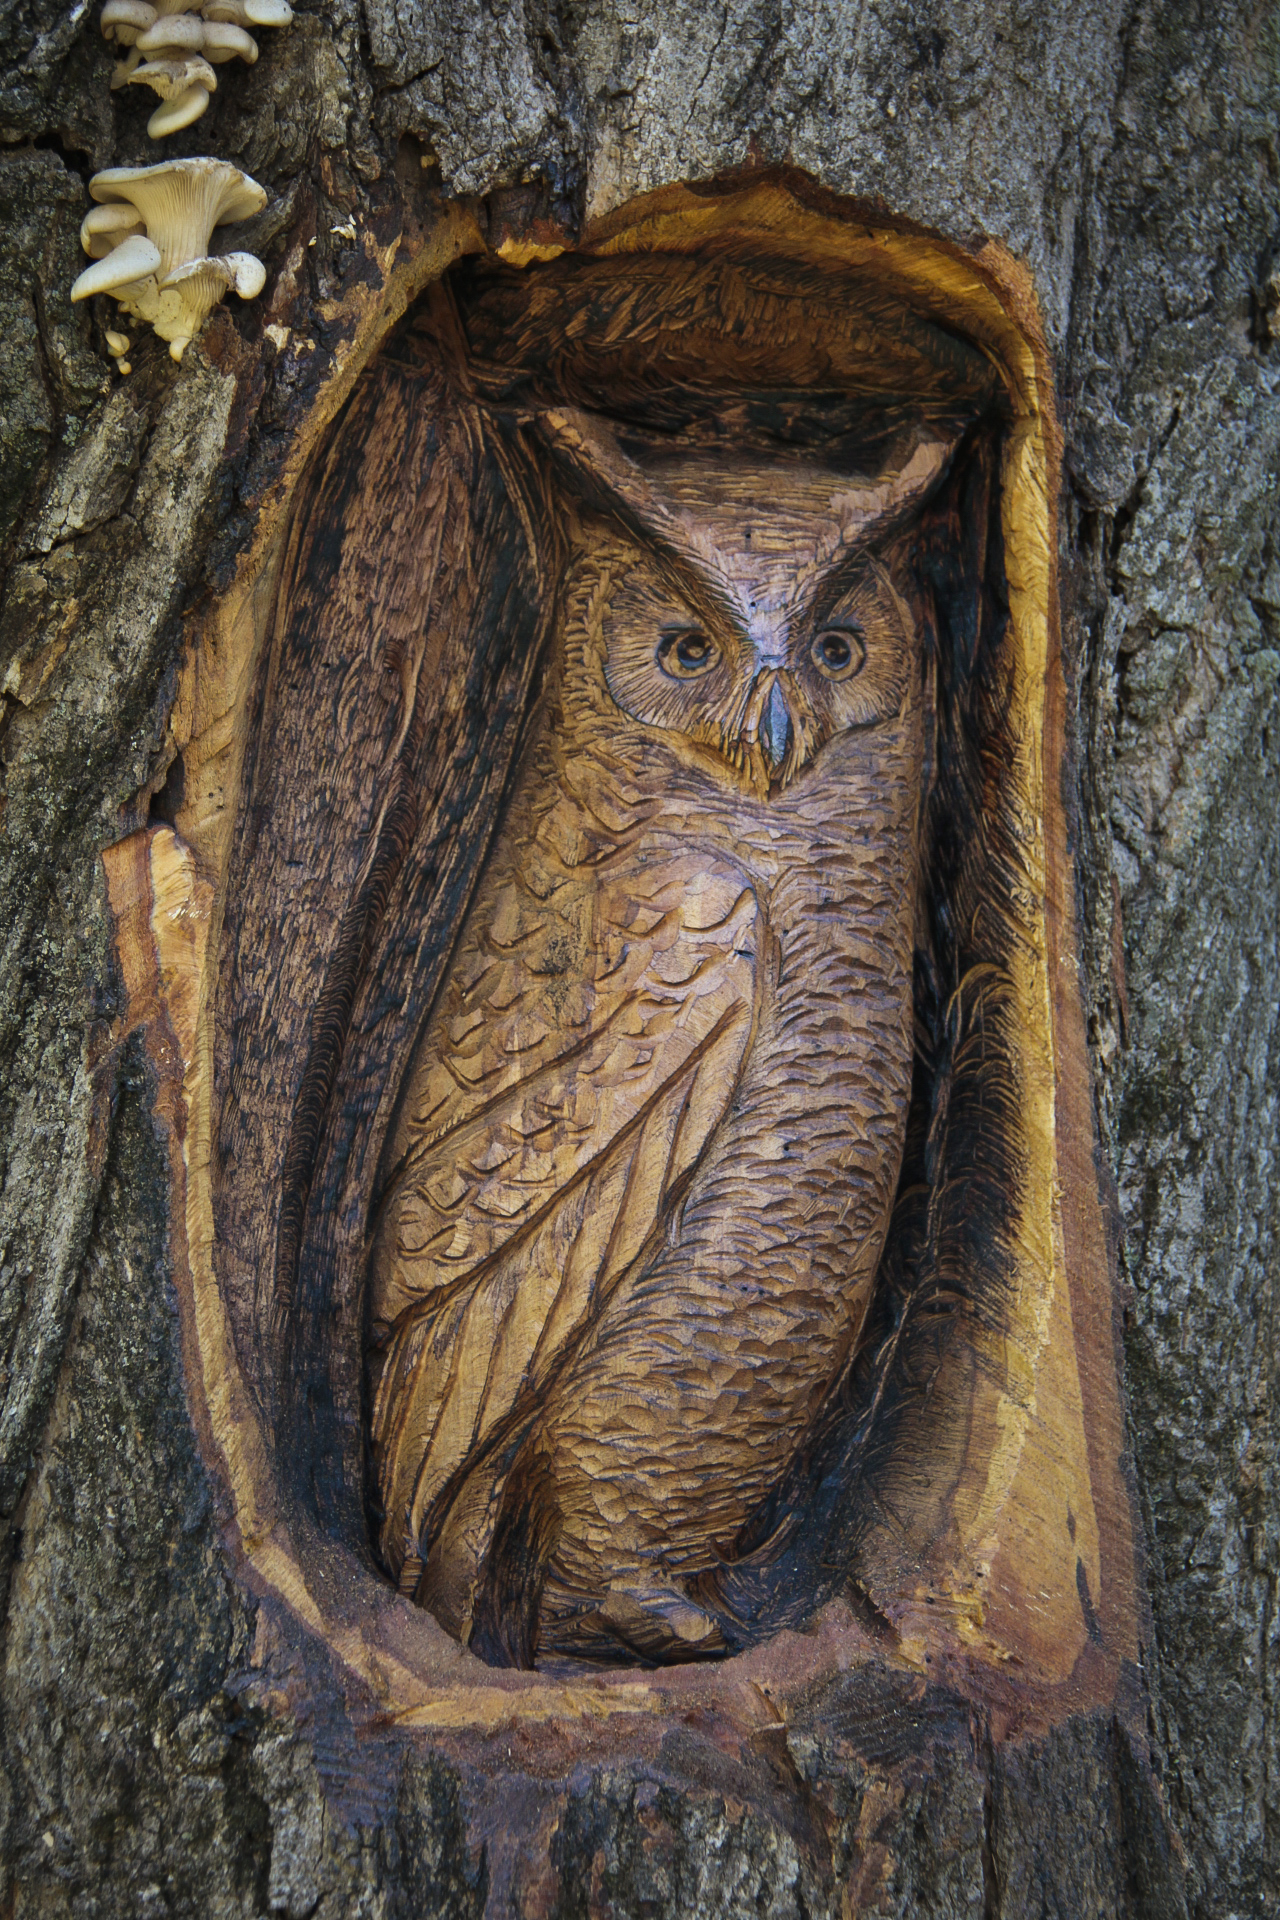 Chiselcraft large owl baby owl wooden log carving wall plaque